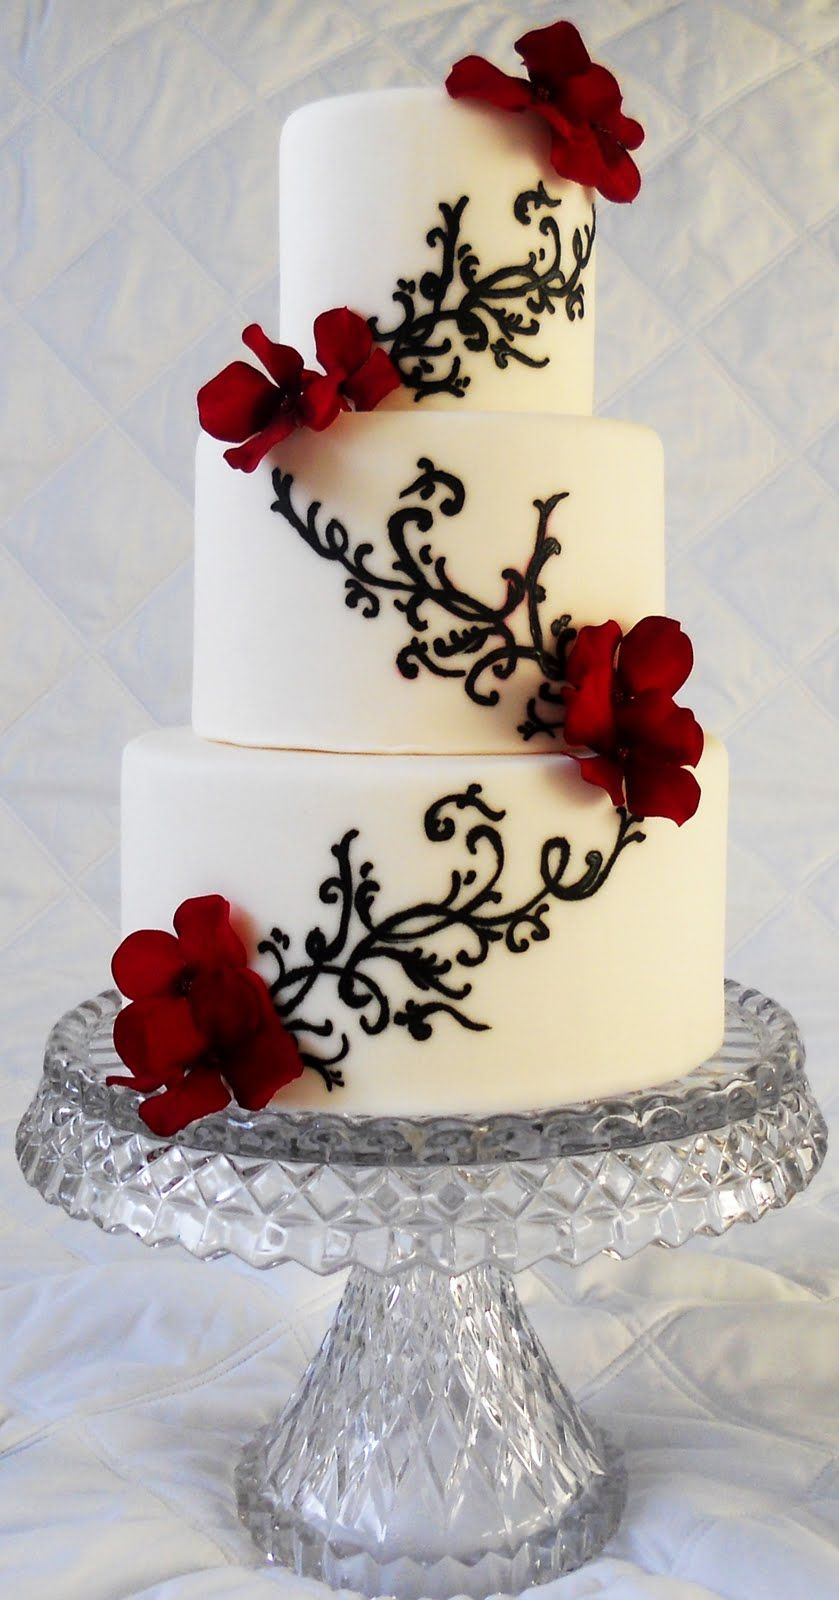 black and white and red wedding cakes   Black and white wedding cake     black and white and red wedding cakes   Black and white wedding cake with  red hydrangias jpg